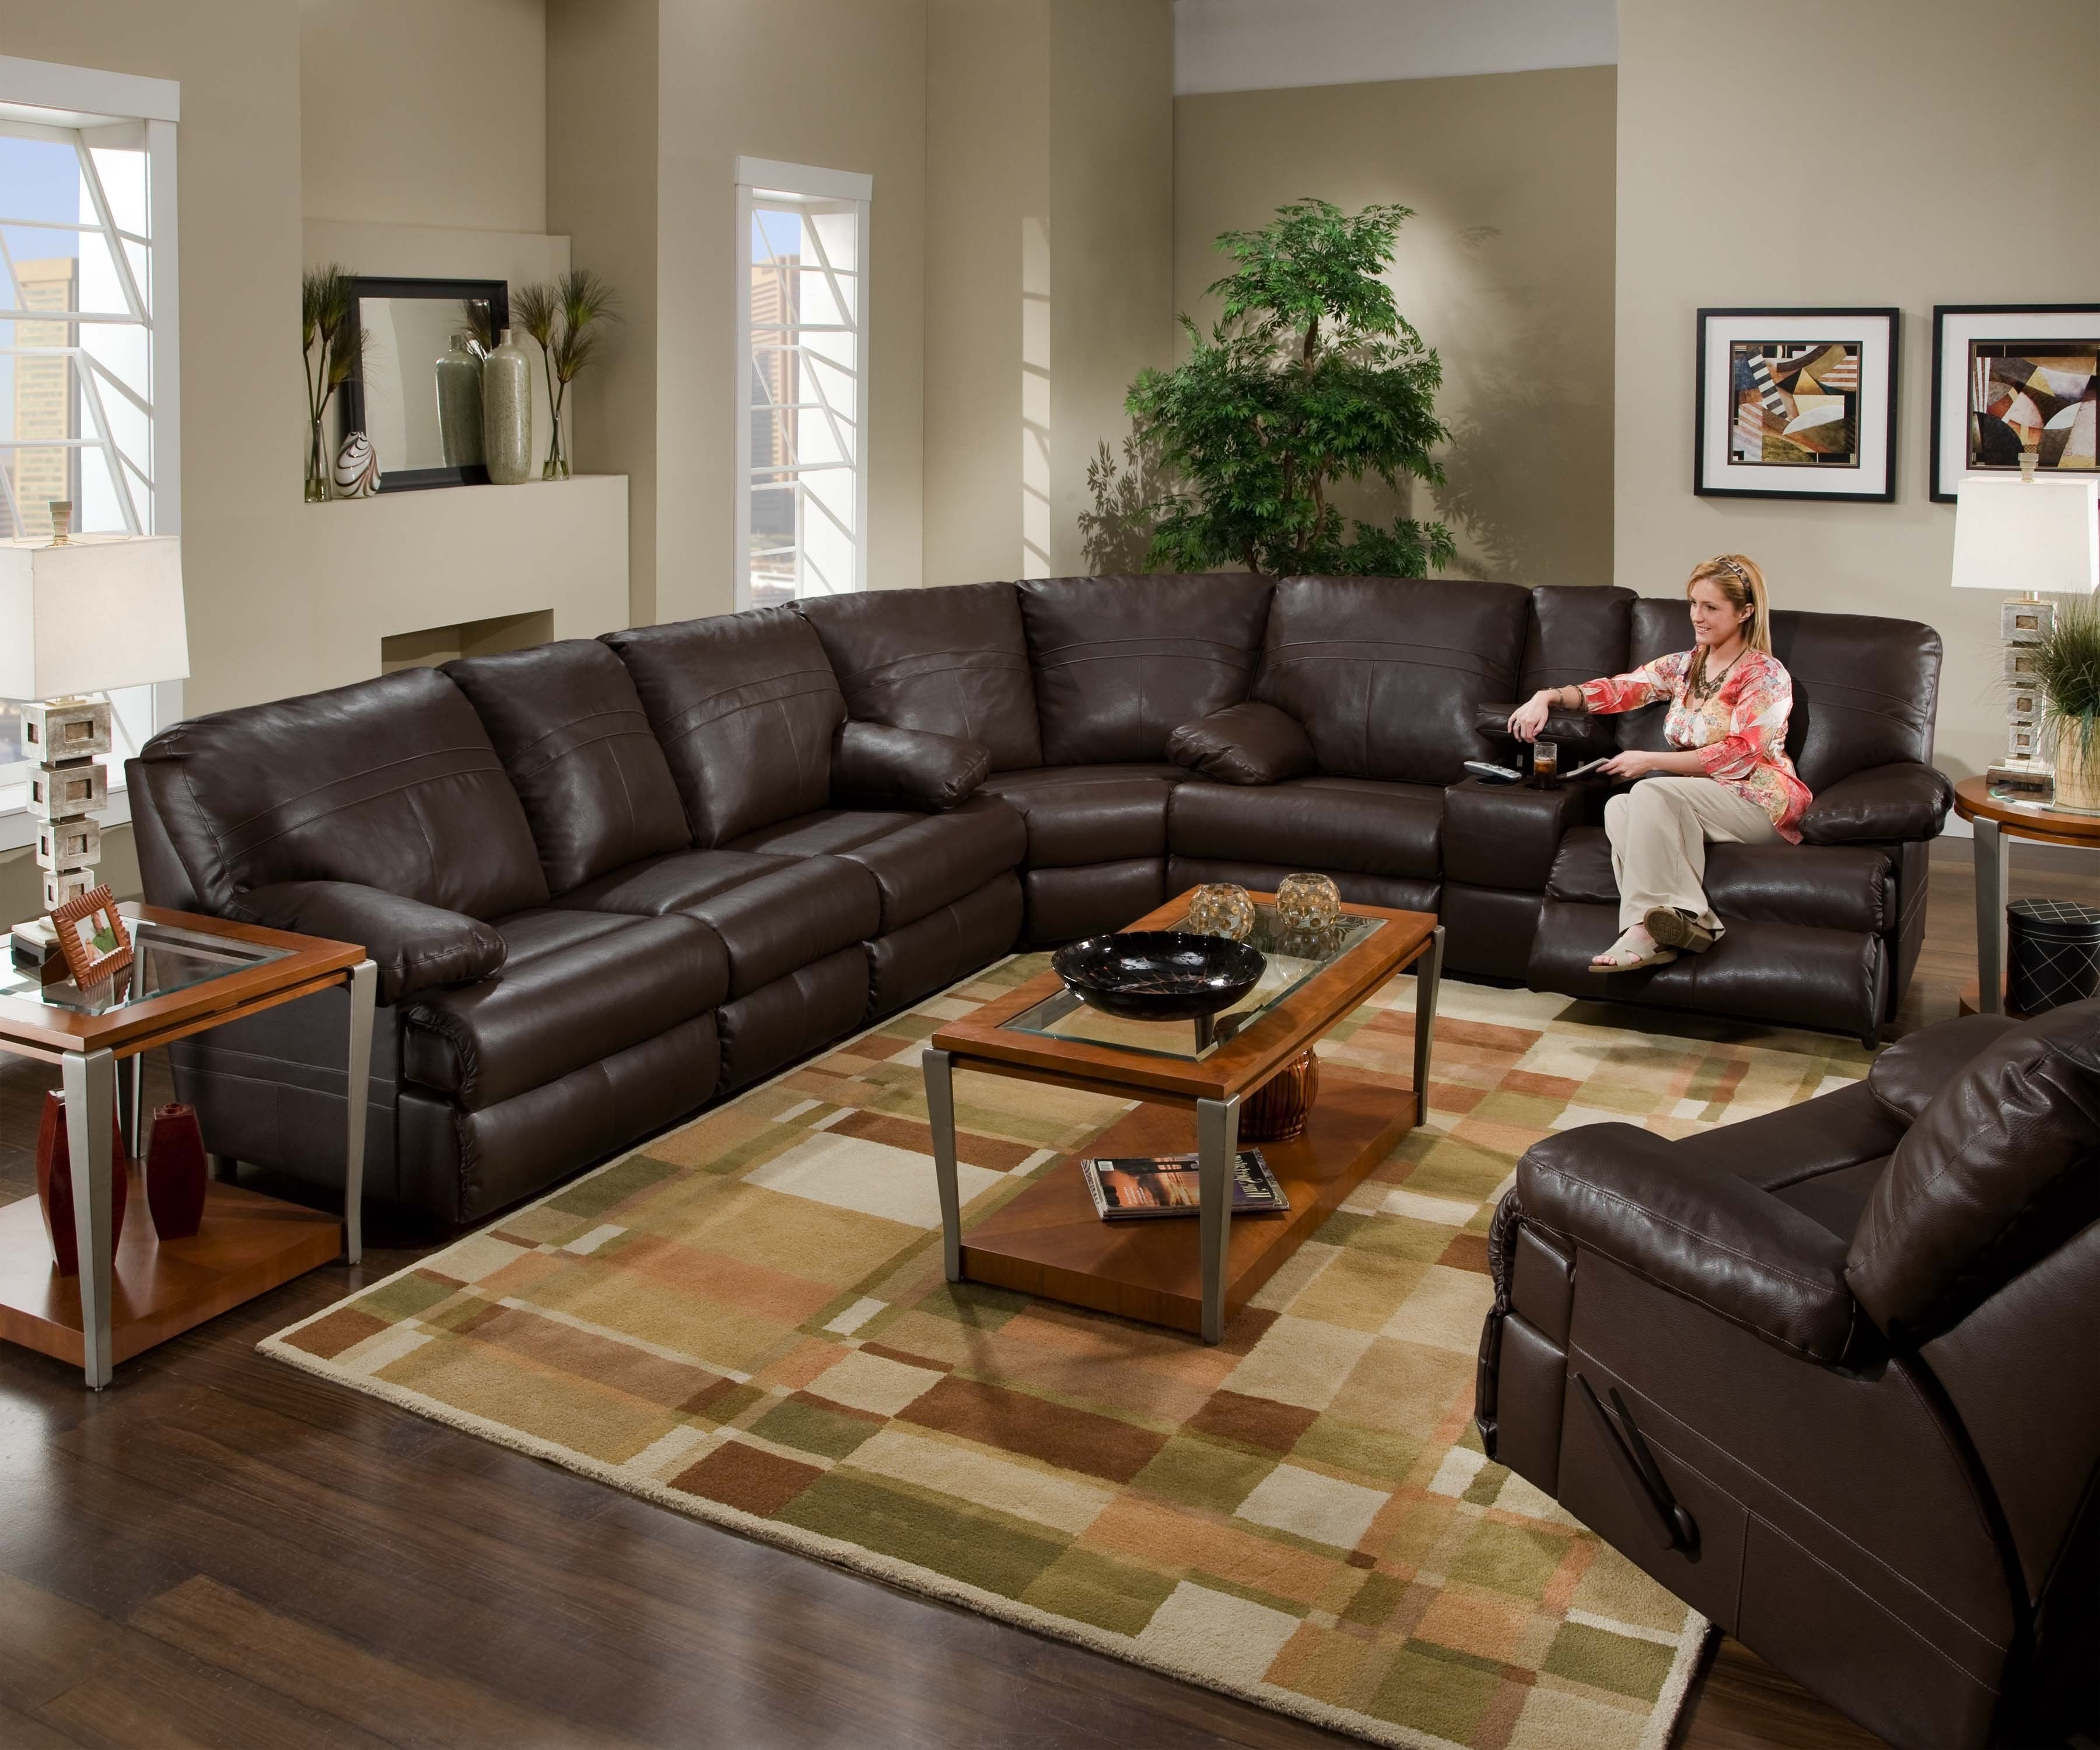 Halifax Sectional Sofas Inside Famous Sectional Leather Couch With Recliners. (View 7 of 15)